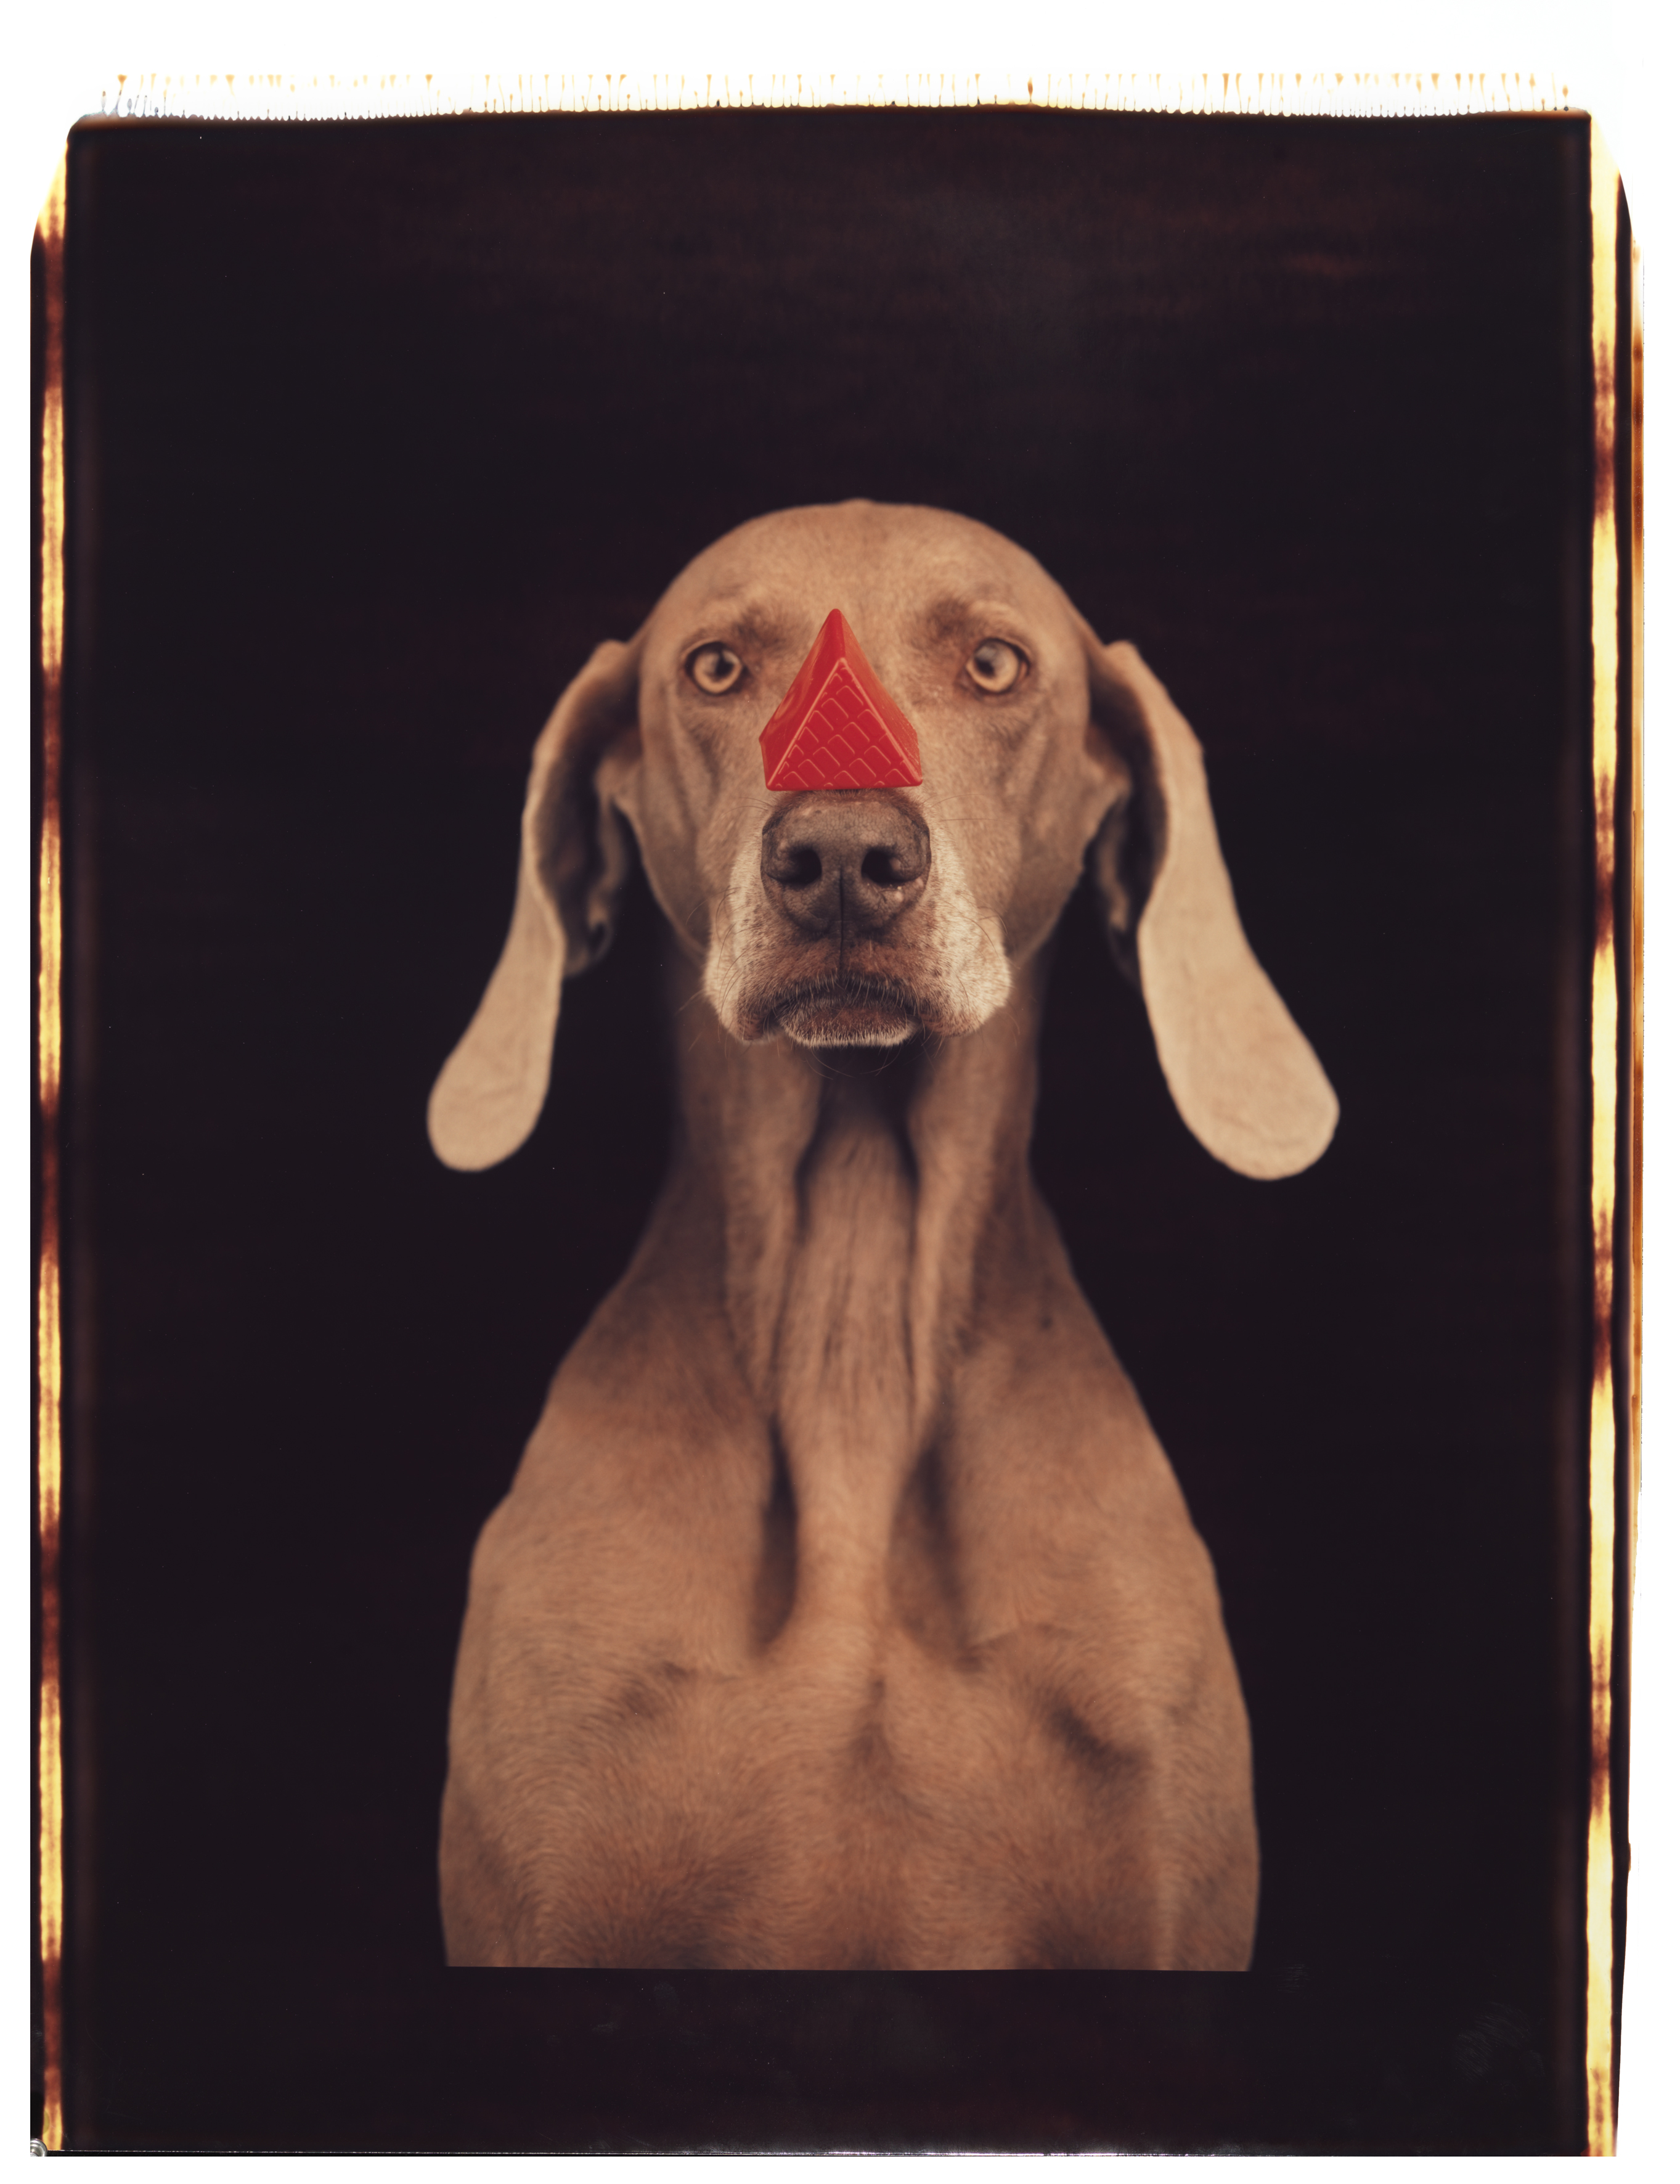 William Wegman: Red Triangle, 1993, (Seite 274) © William Wegman / courtesy Schirmer/Mosel